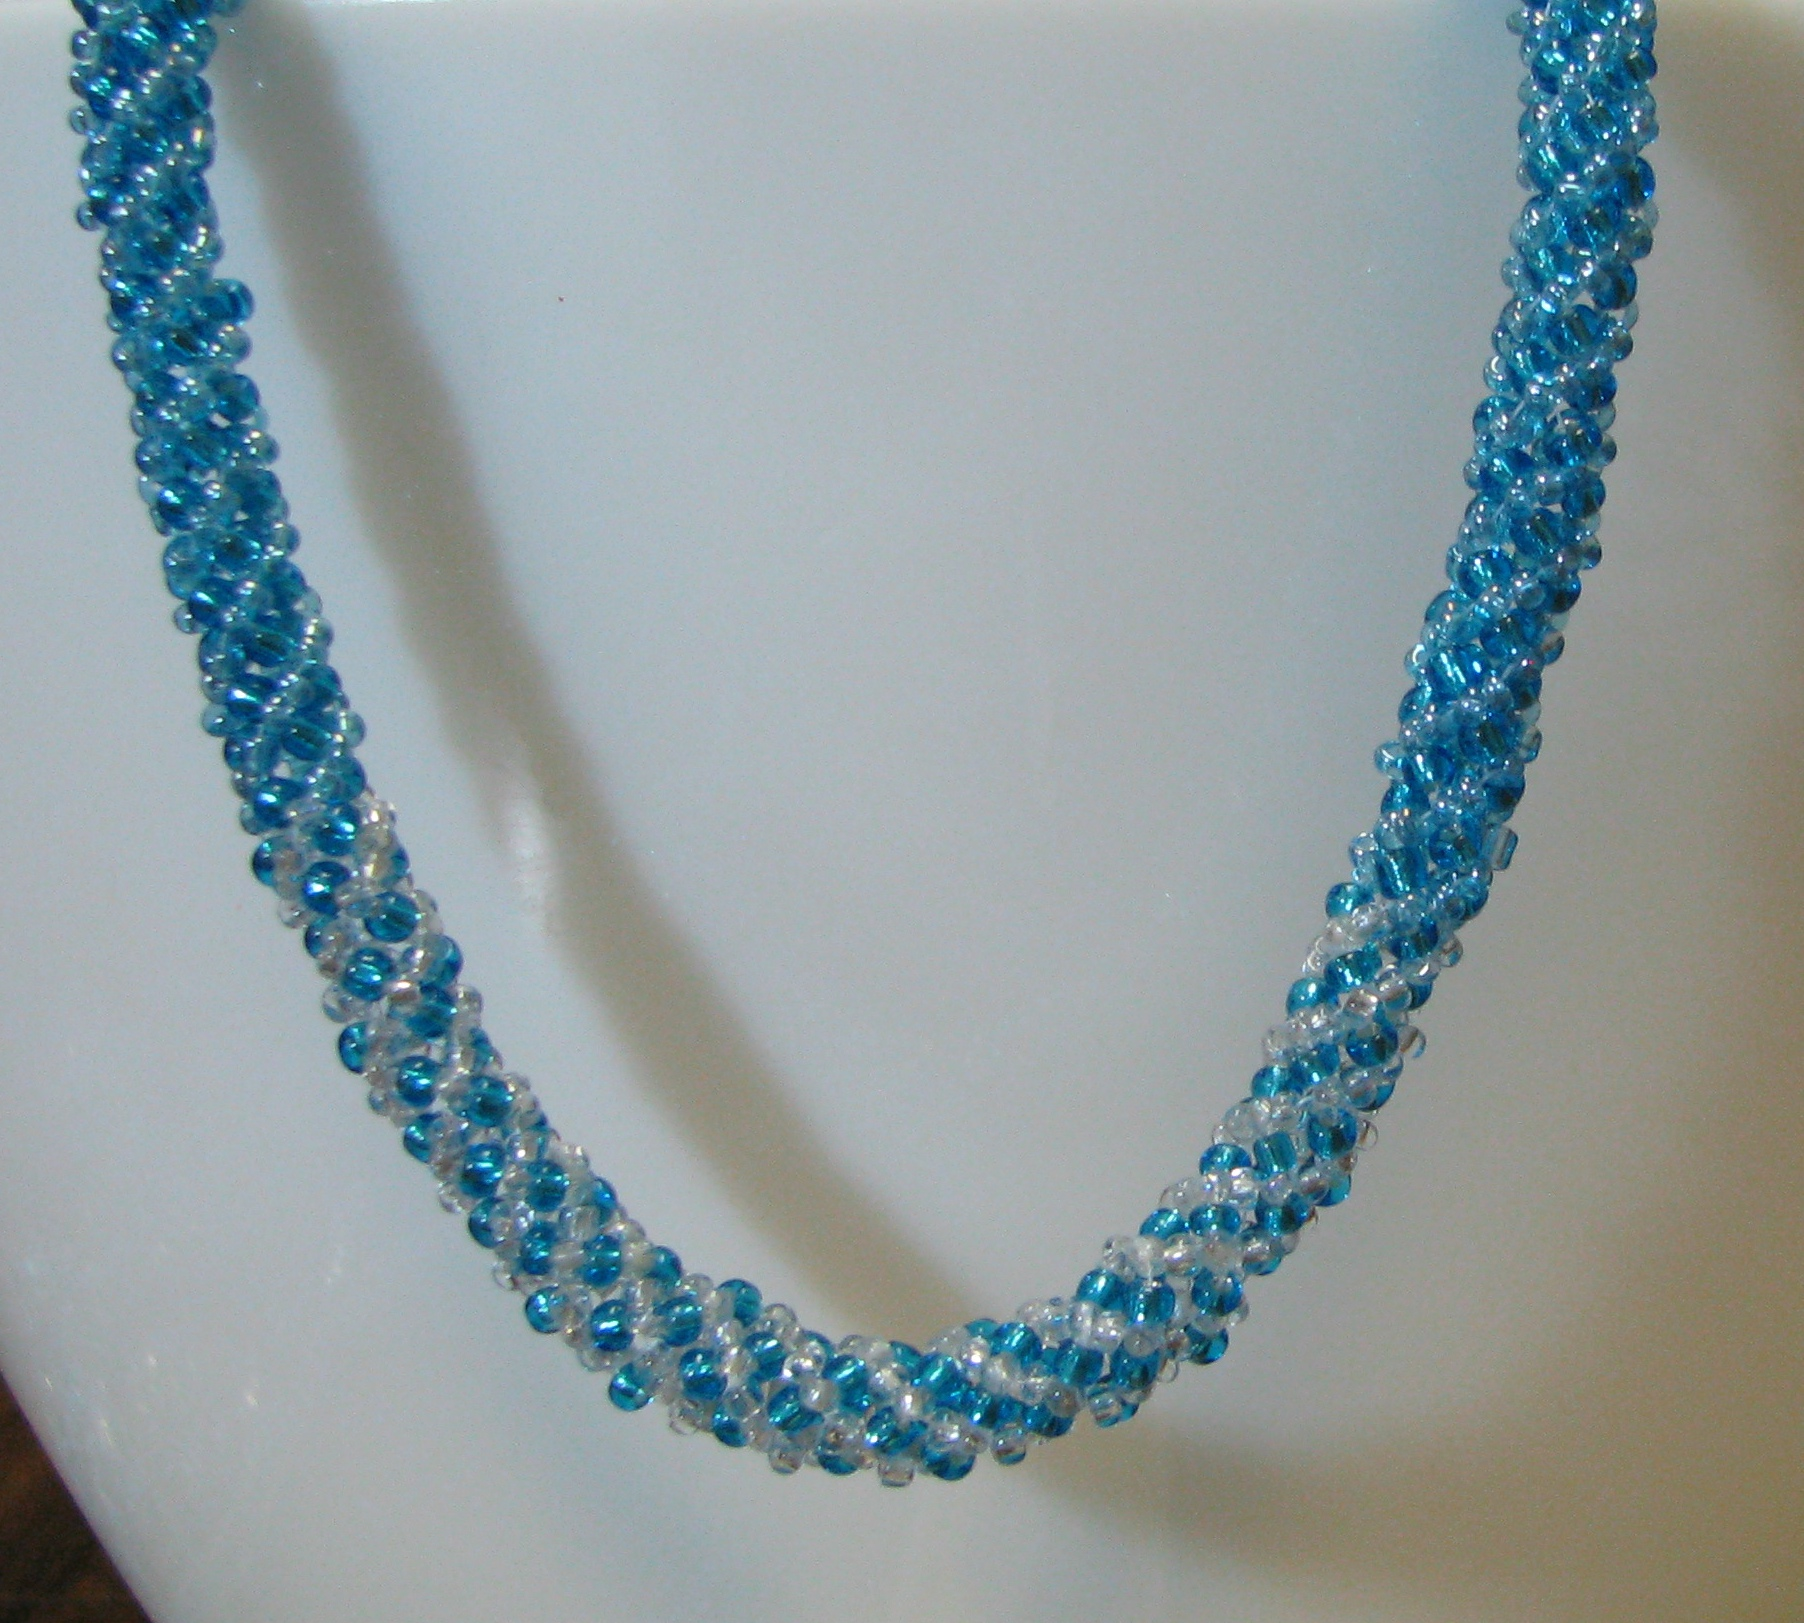 4_necklace_13_img_6469